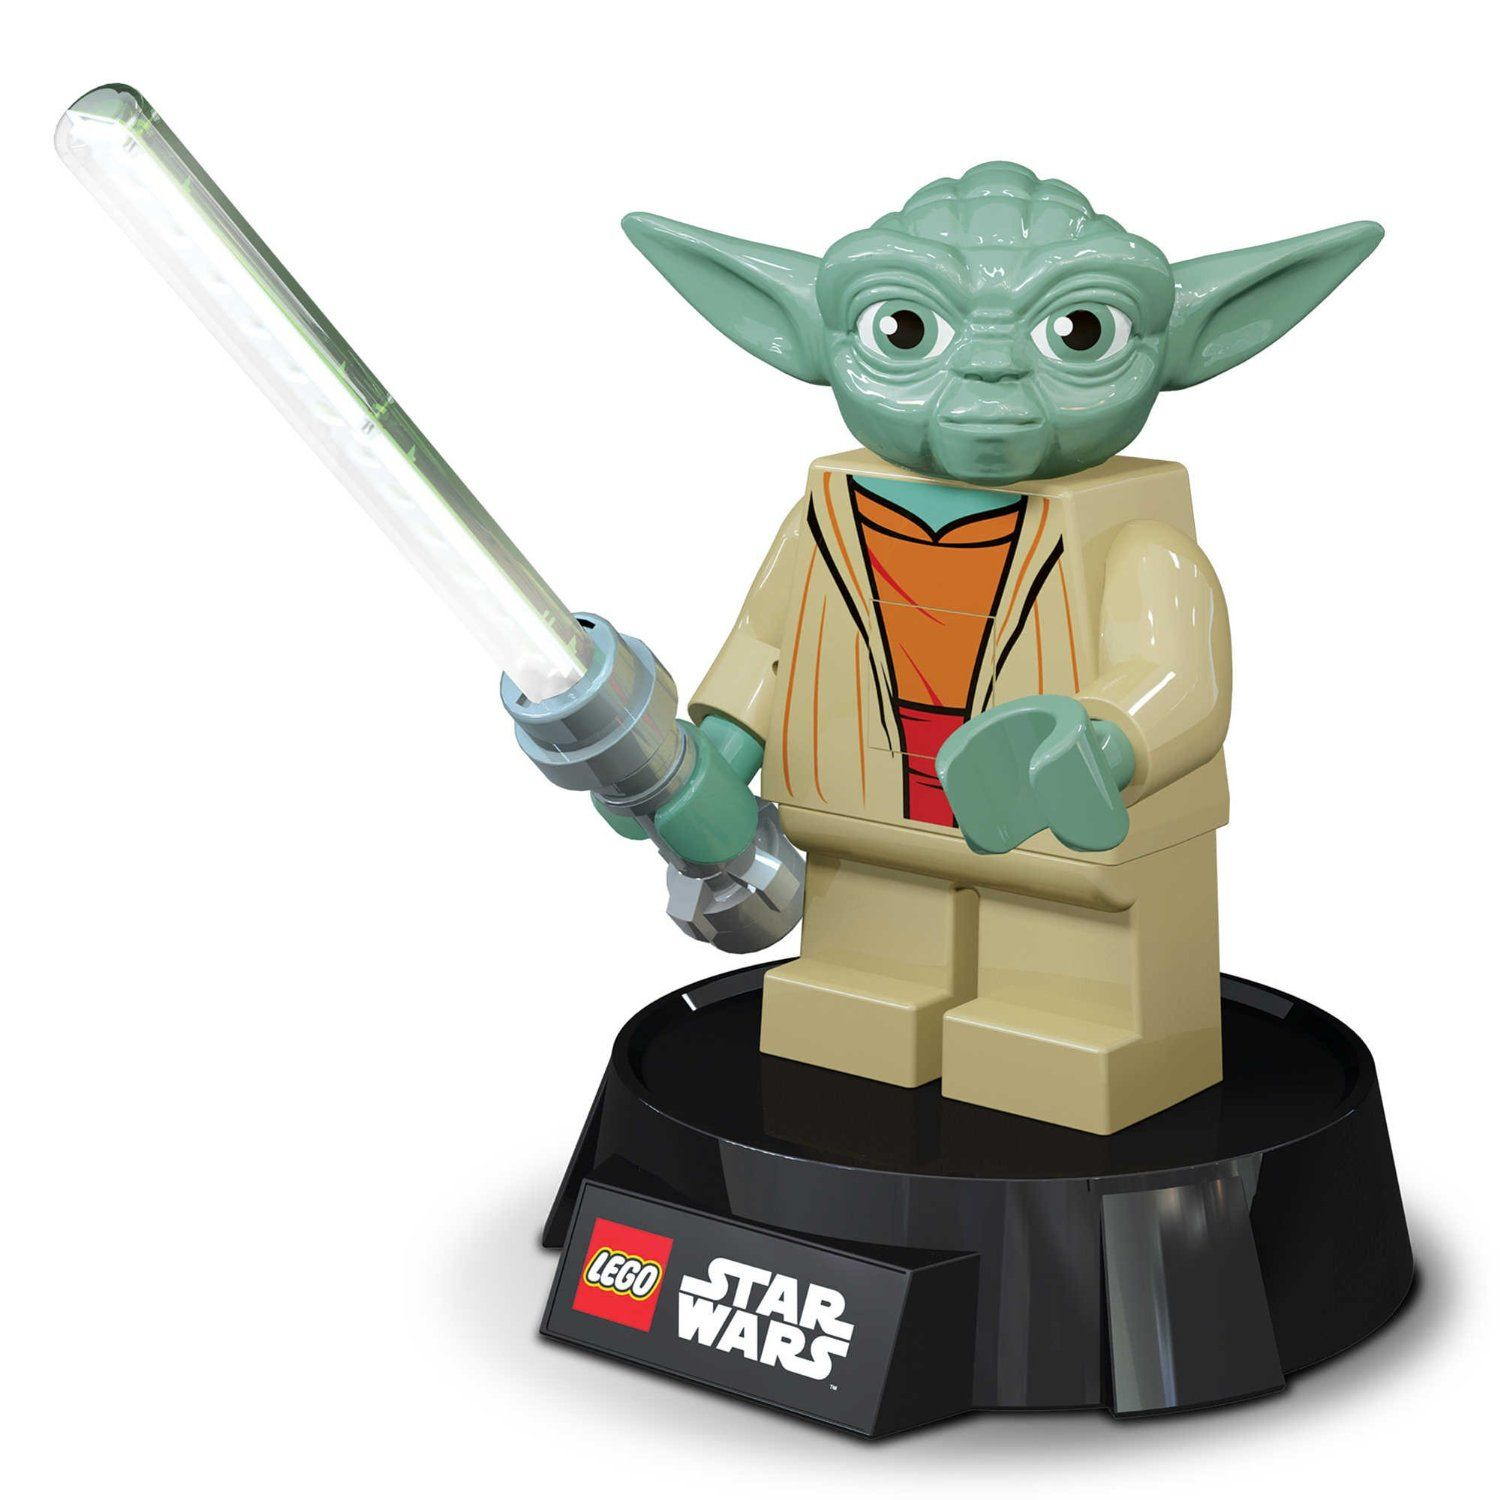 Pin By Wars Star With Me On Lego Glowing LampLamp Desk f7gb6IYvy